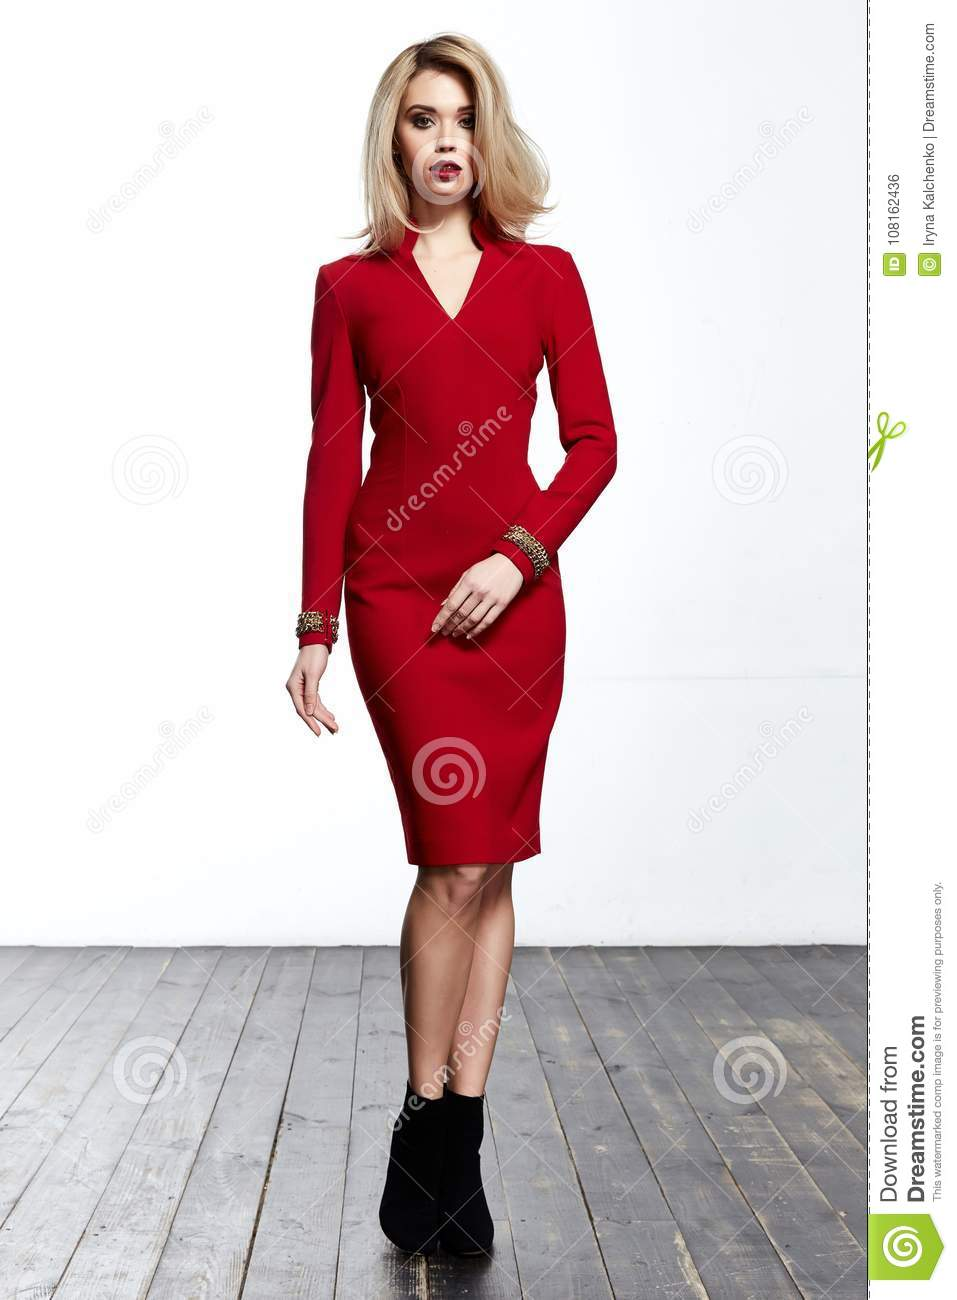 73dabb93cfd Blond hair woman wear office red skinny dress code style pretty beautiful  face model pose catalog of fashion clothes businesswoman white background  studio ...